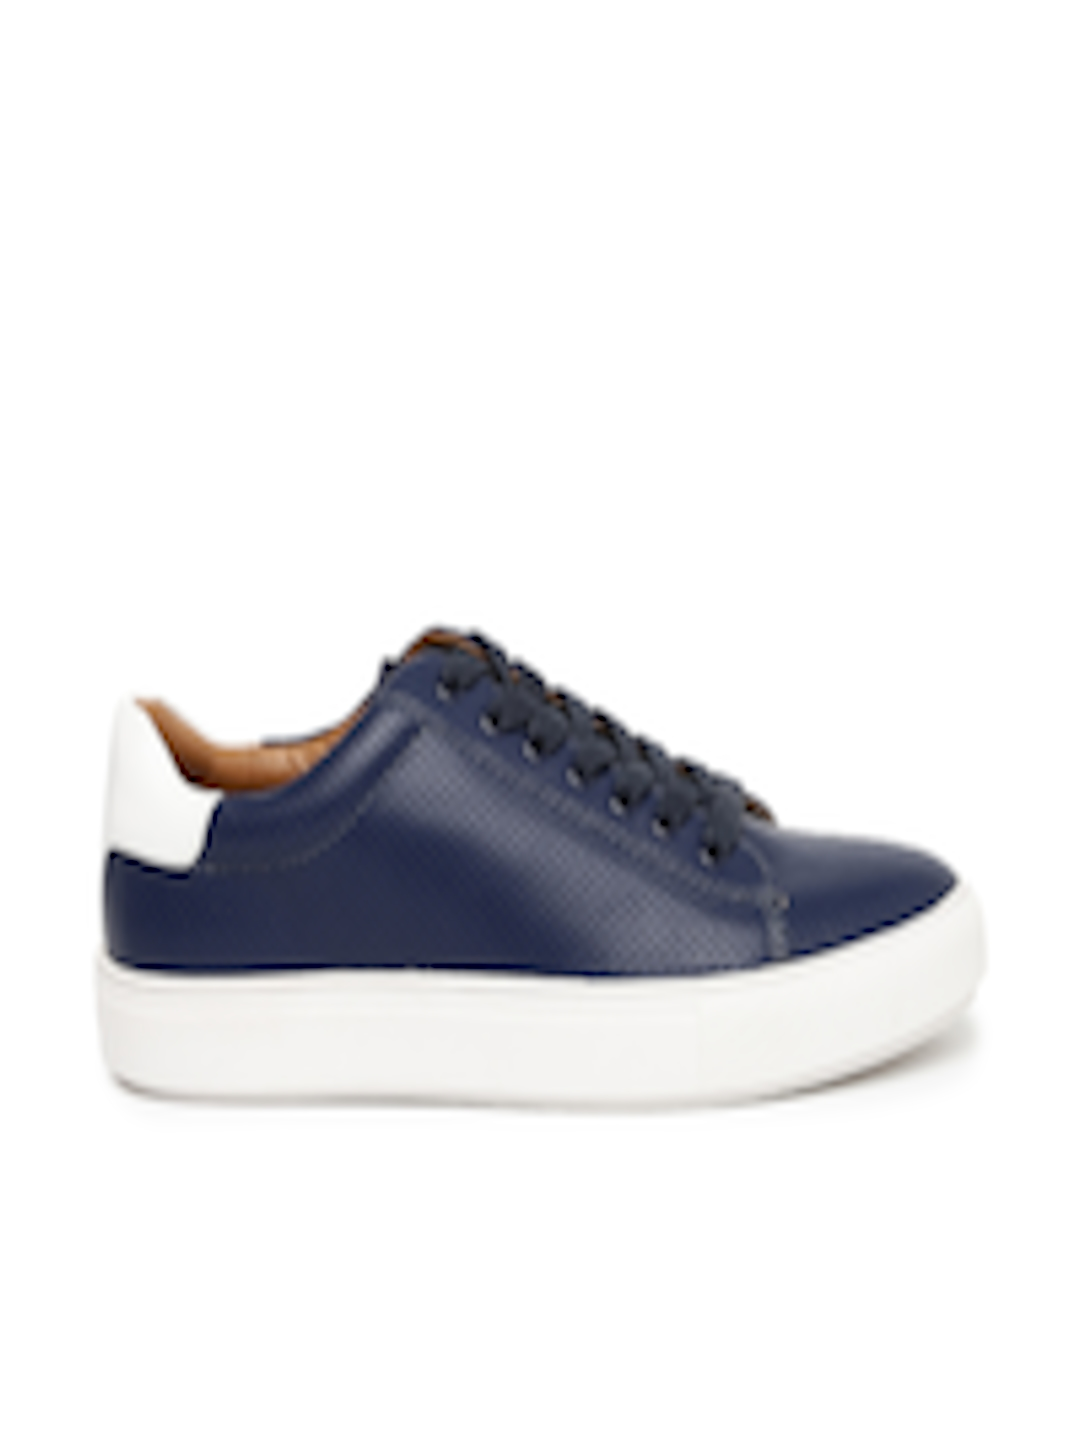 164fc99e3ce Buy Steve Madden Men Navy Blue HESTER Perforated Sneakers - - Footwear for  Men